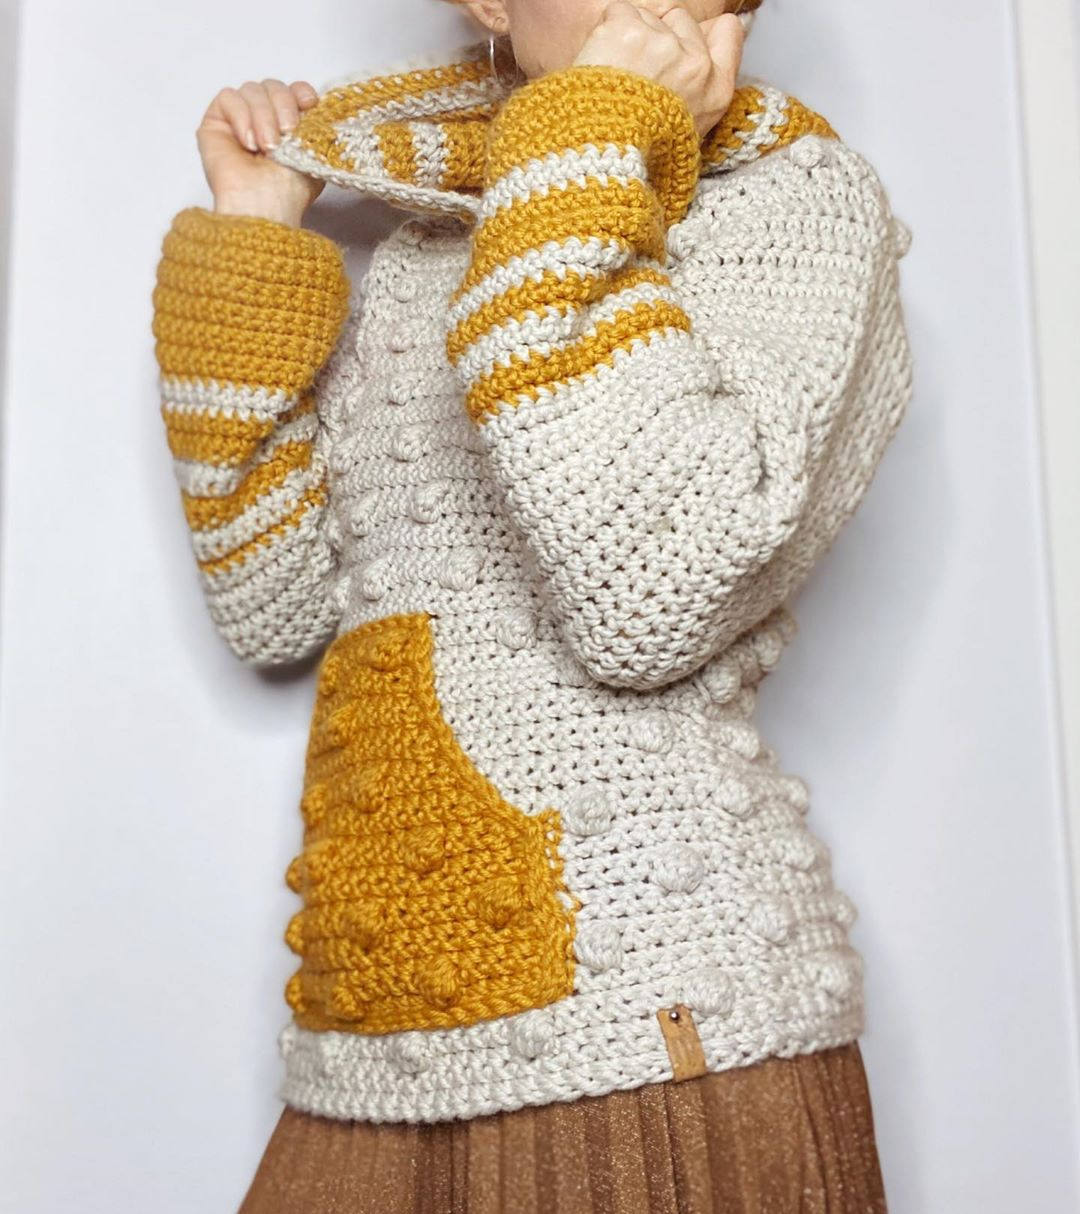 It Was Finally A Colder Day Here, -12'C. Crochet - Crochet Tutorial